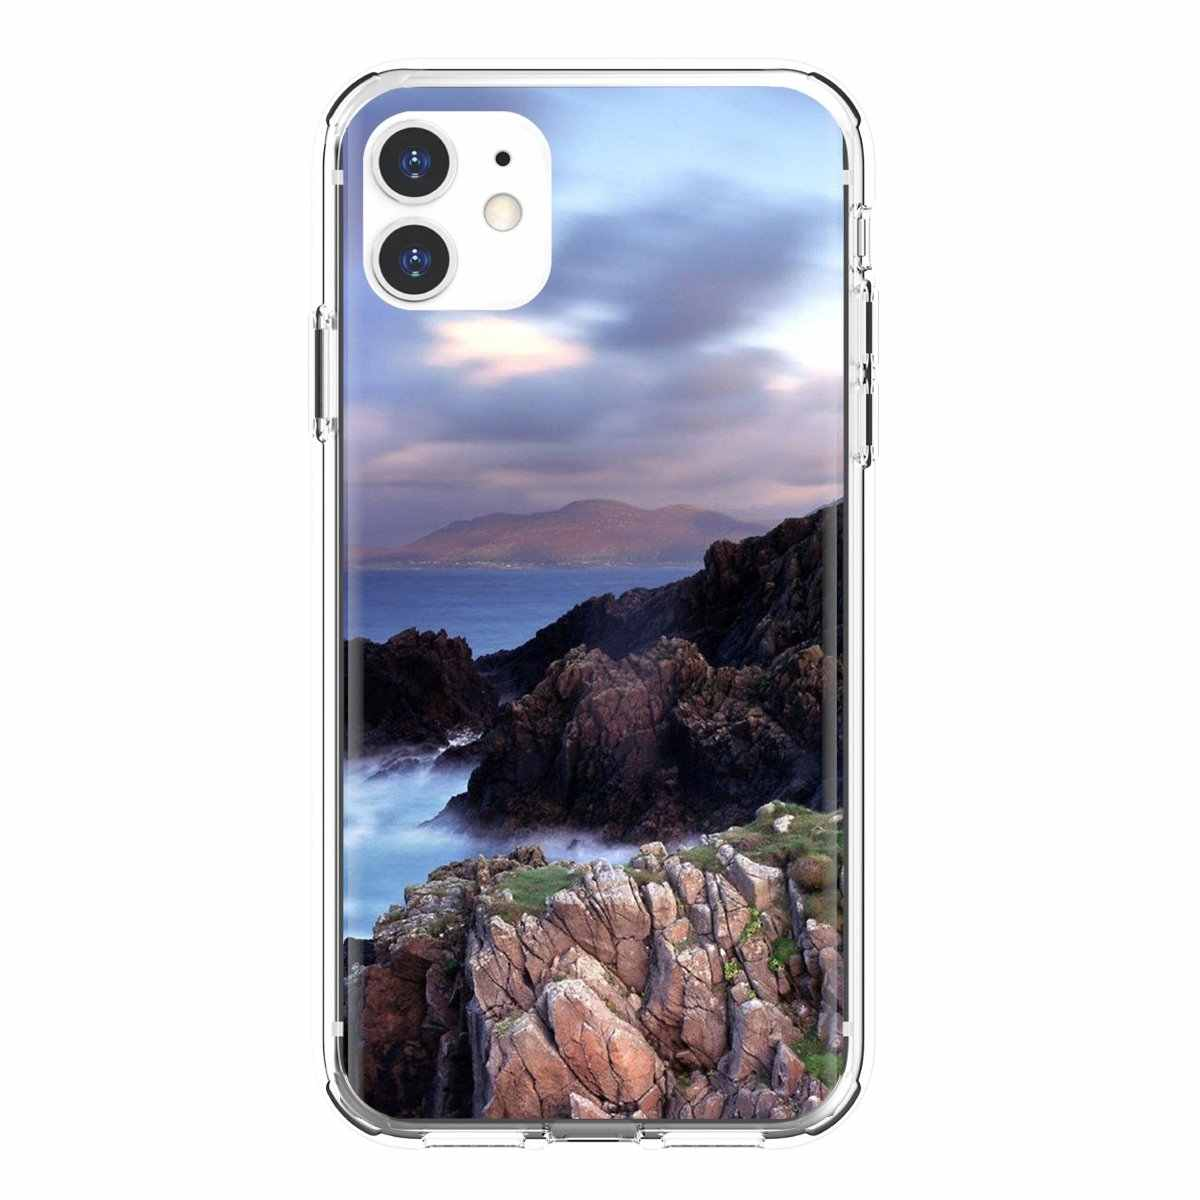 Silicone Case Cover Beautiful Nature HD Wallpapers For Samsung Galaxy J1 J2 J3 J4 J5 J6.jpg q50